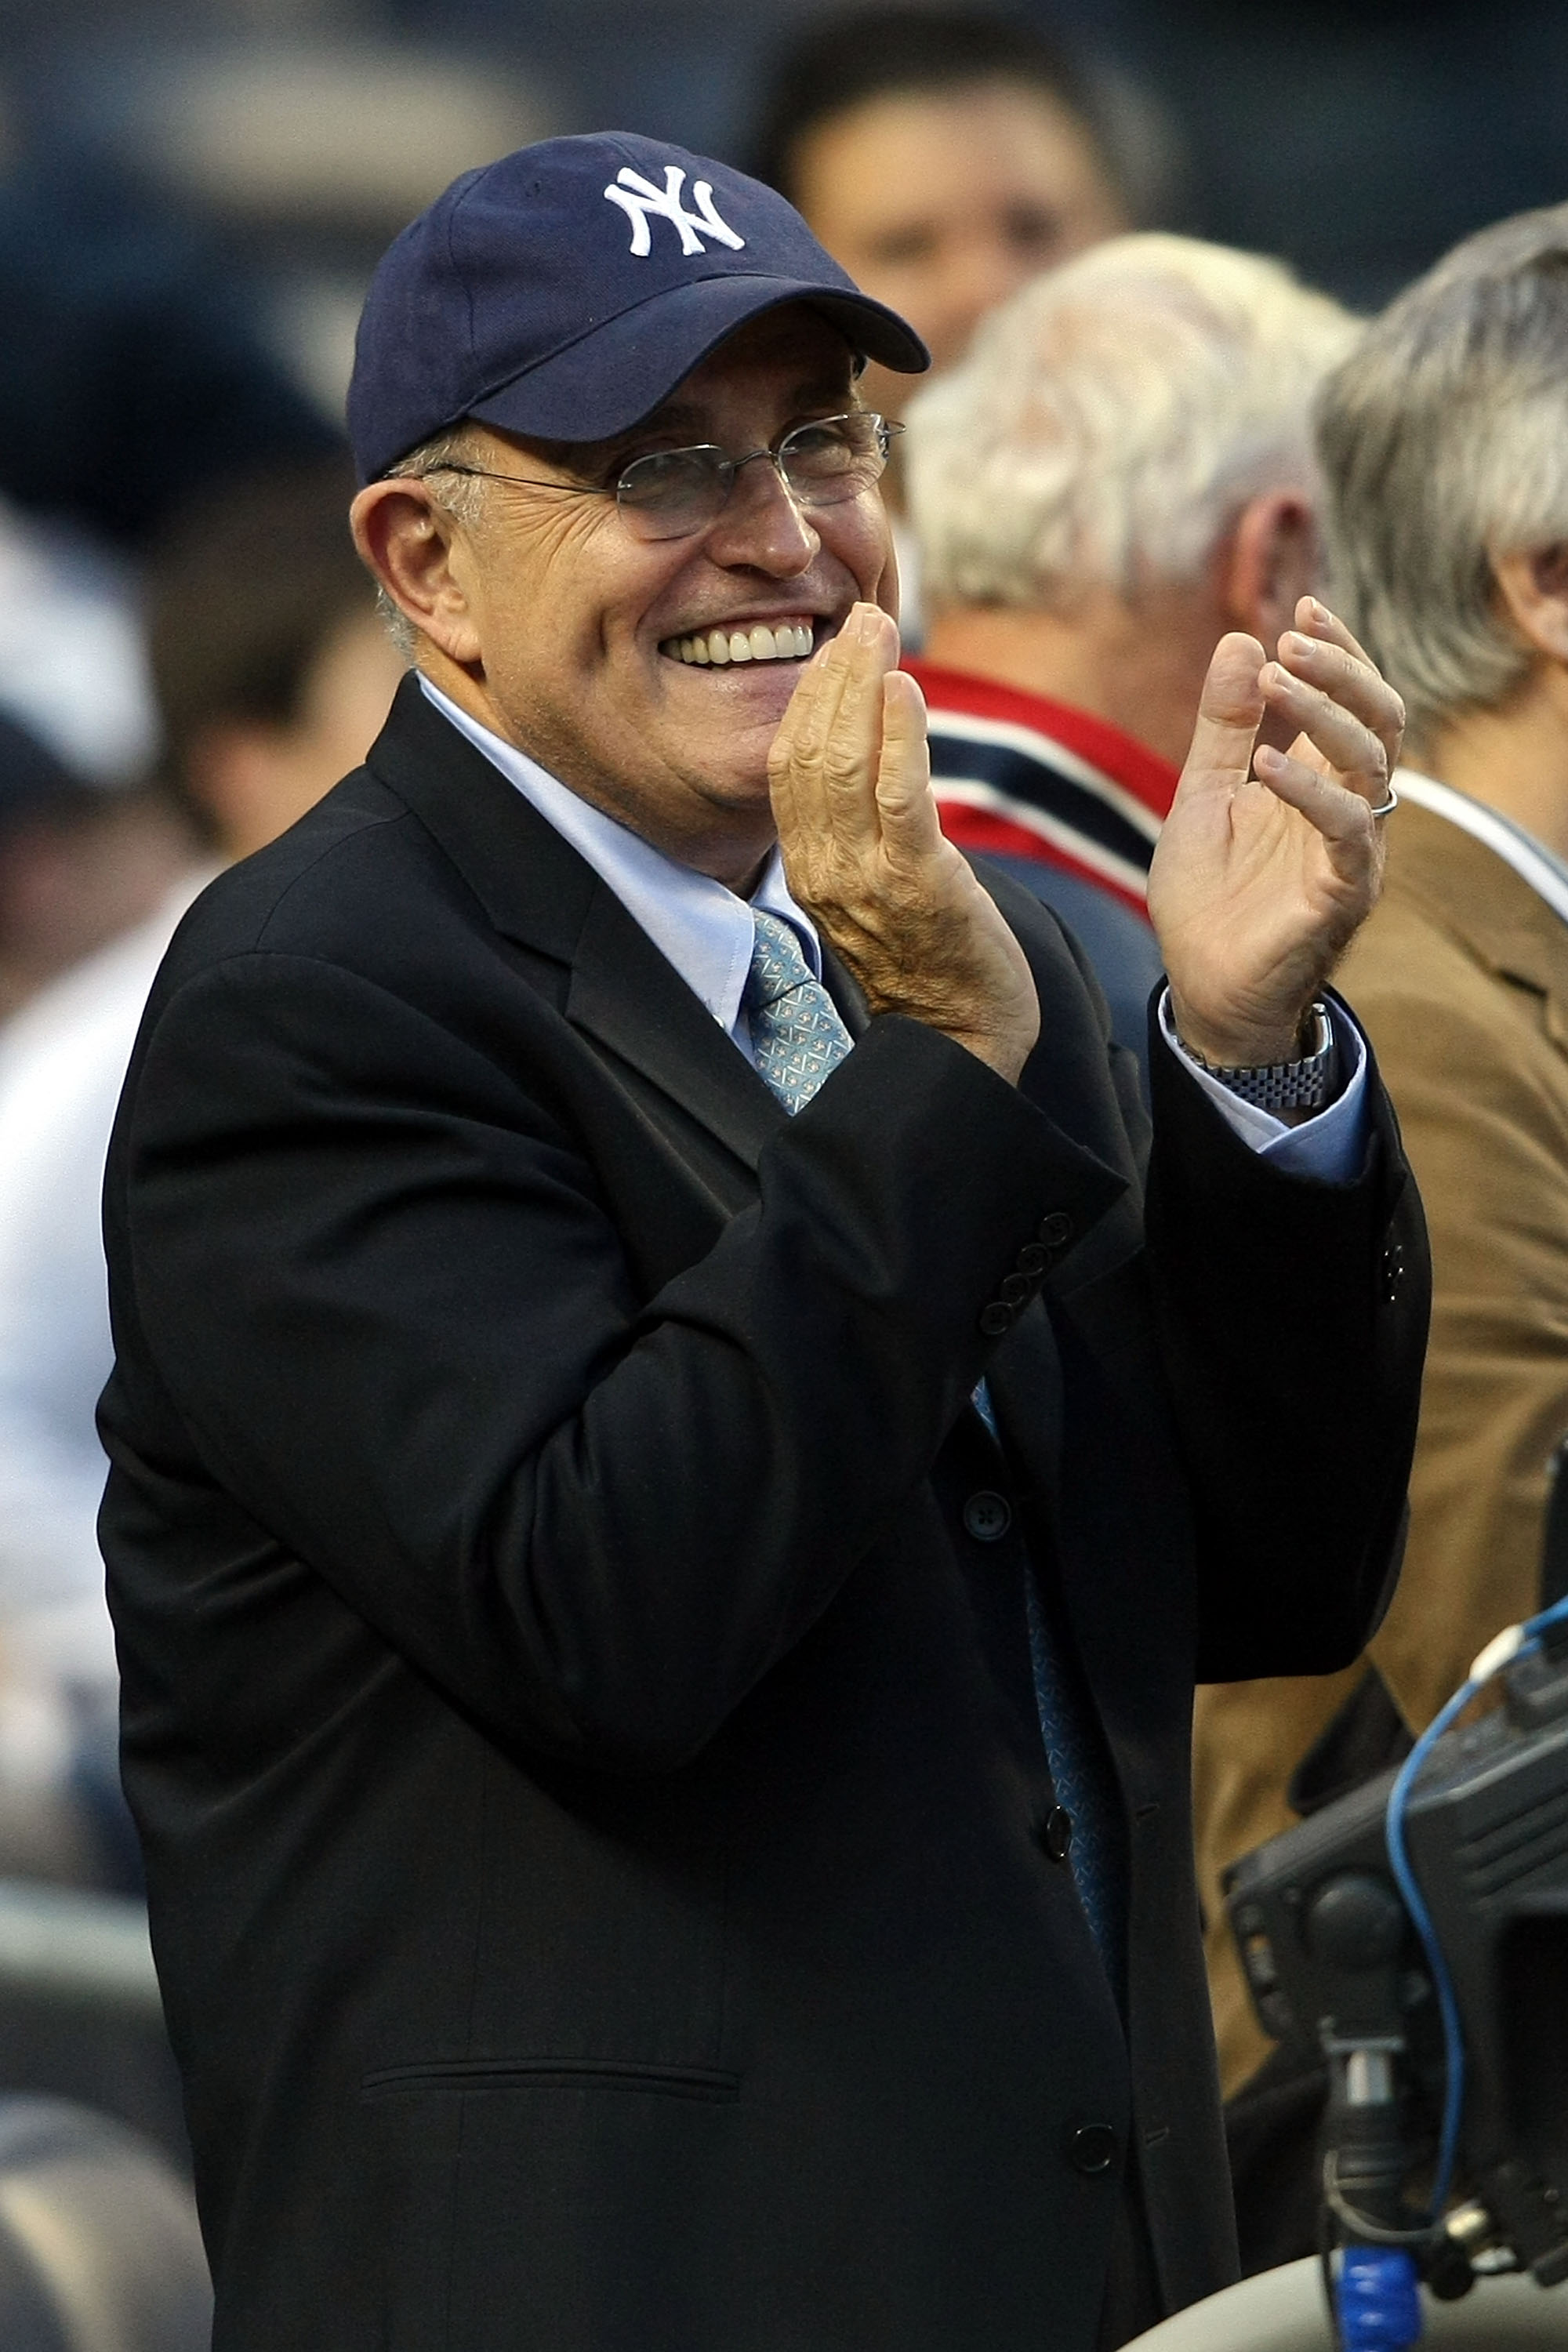 NEW YORK - OCTOBER 09:  Former New York City Mayor Rudolph Giuliani looks on as the New York Yankees take on the Minnesota Twins in Game Two of the ALDS during the 2009 MLB Playoffs at Yankee Stadium on October 9, 2009 in the Bronx borough of New York Cit